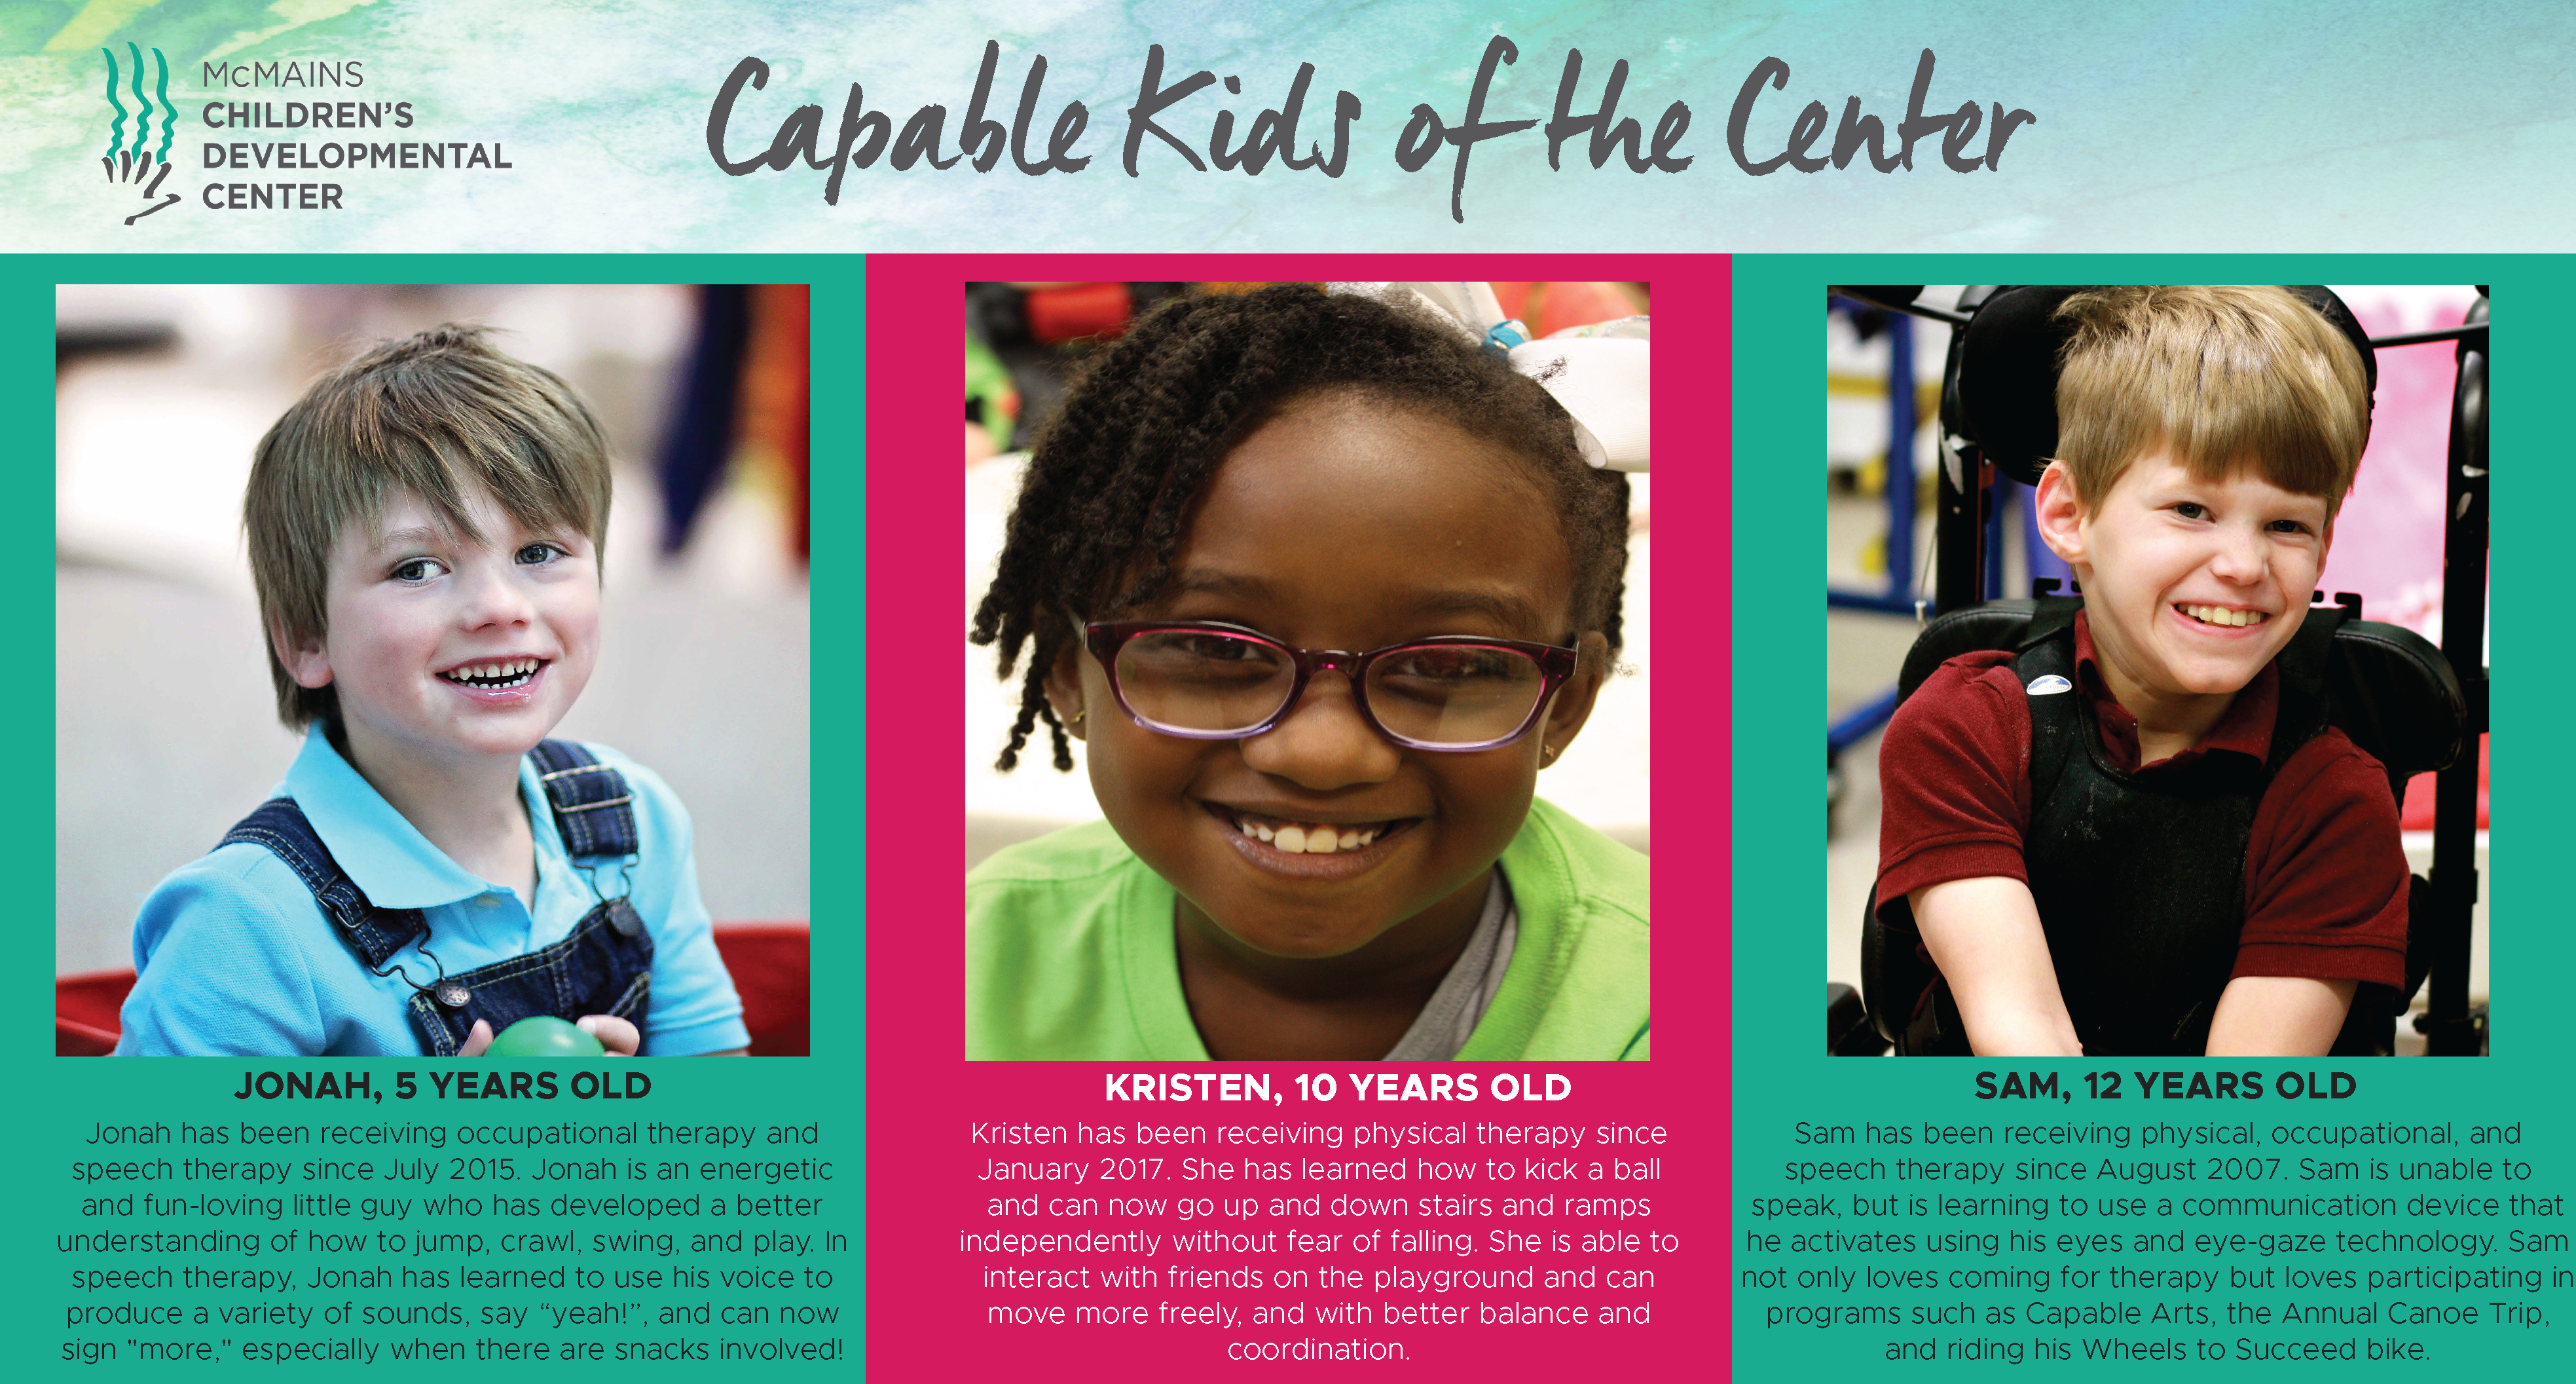 Give to The Center | McMains Children's Developmental Center